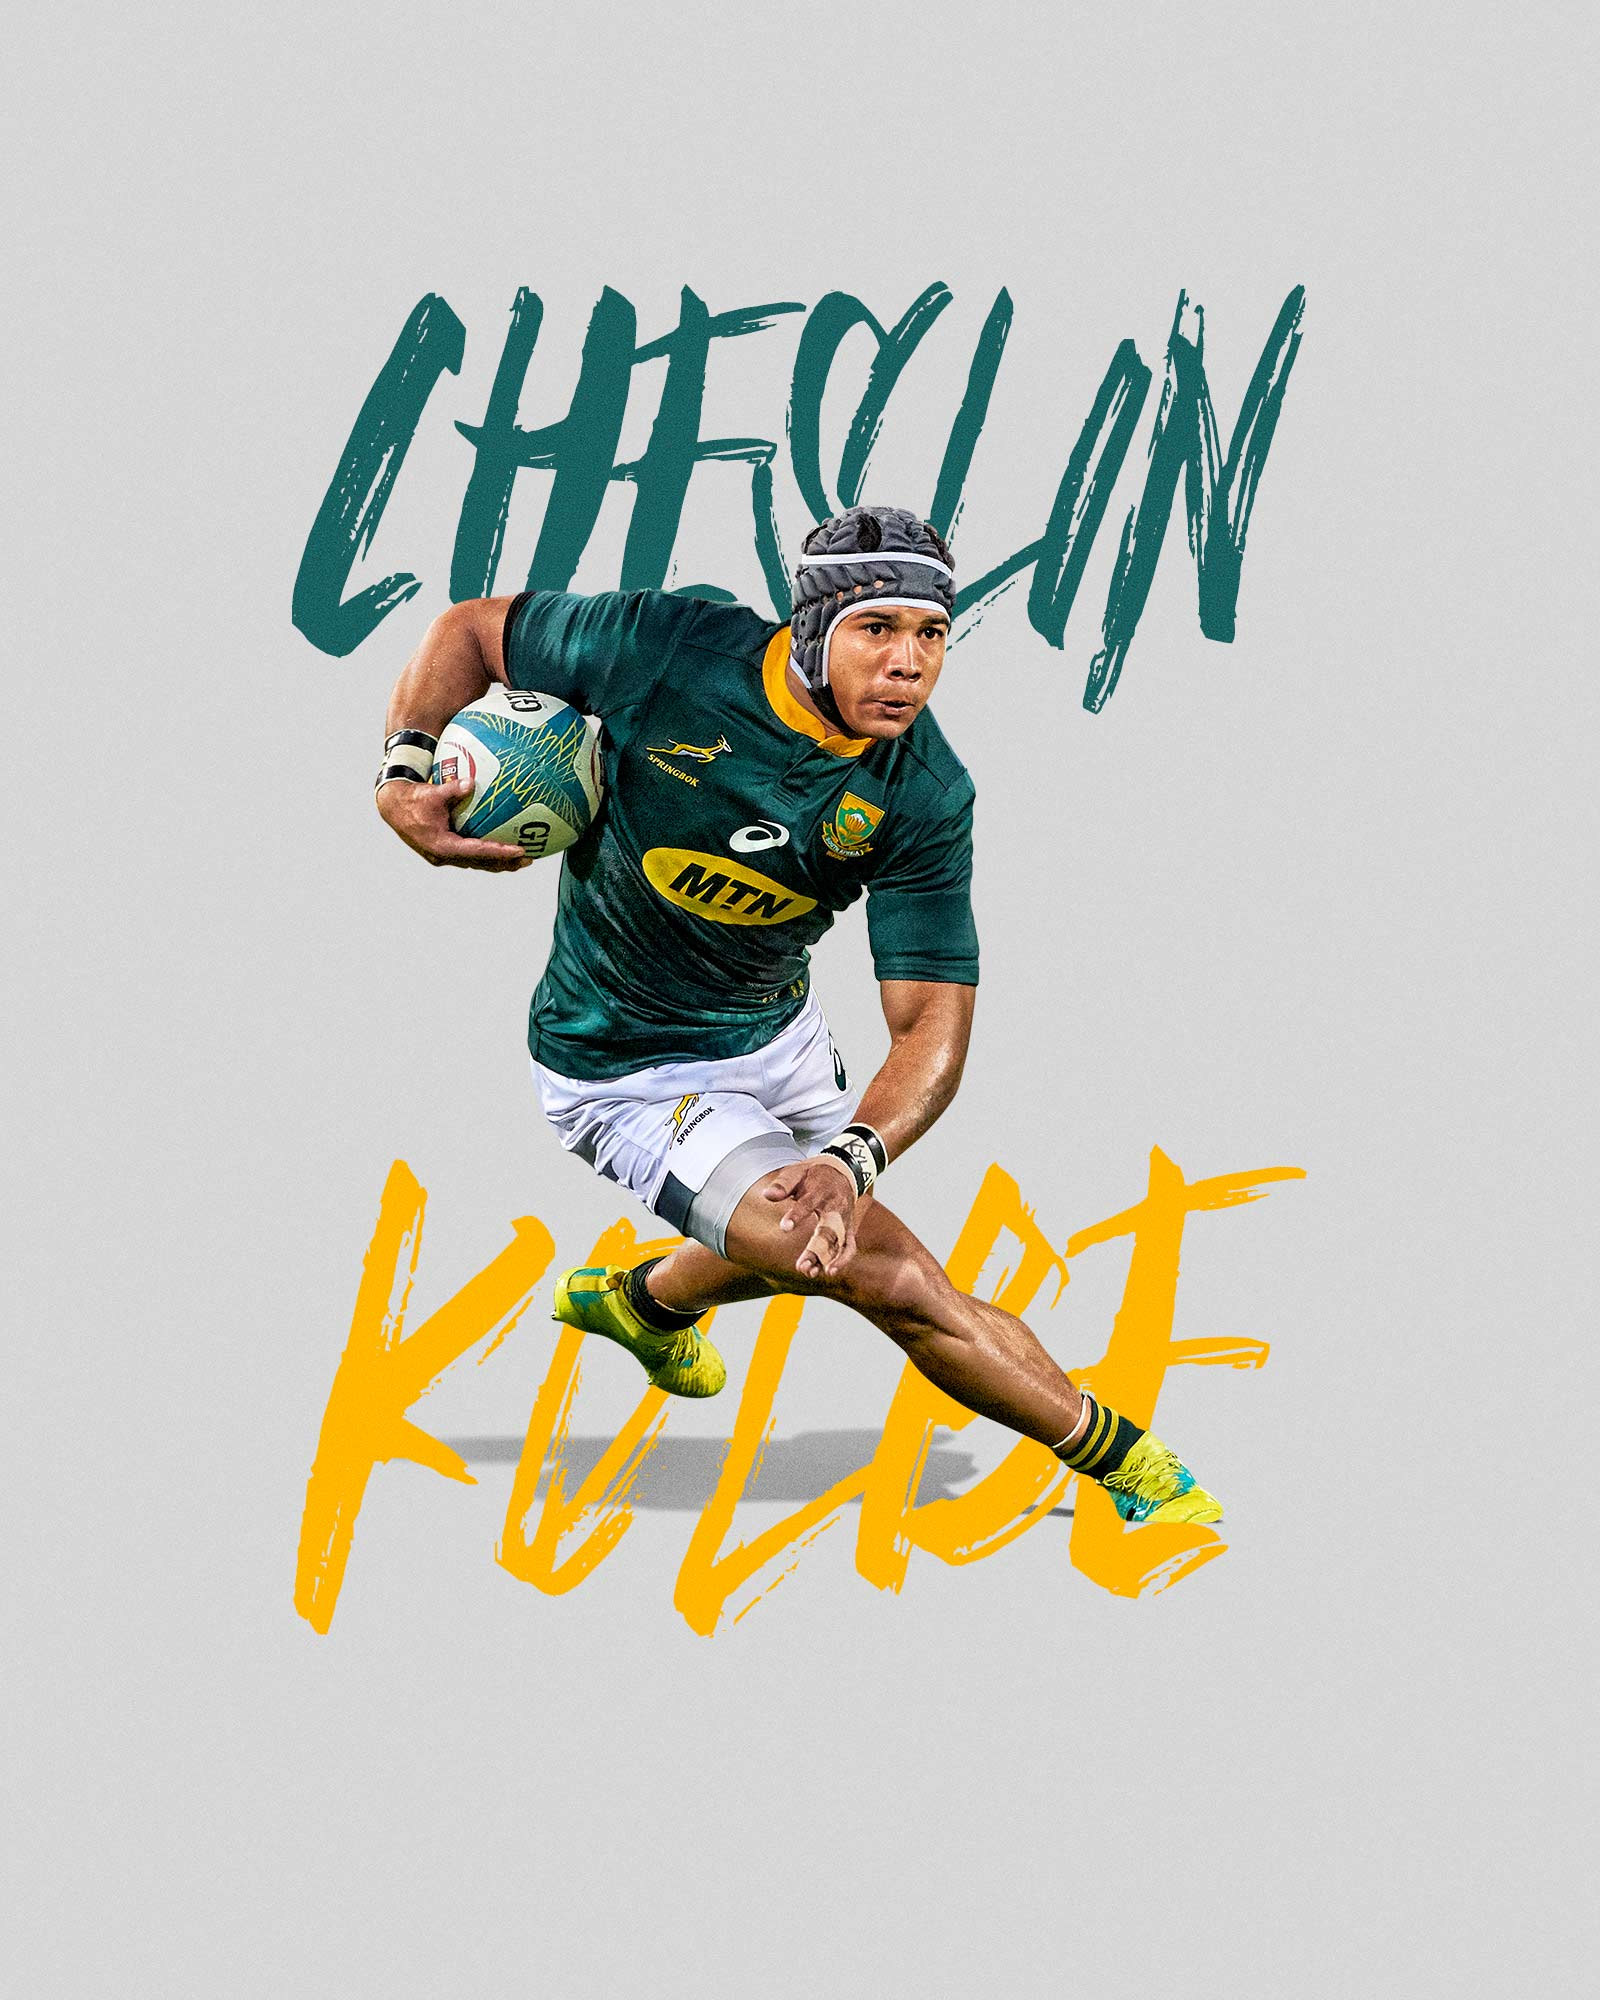 springbok rugby athlete cheslin kolbe photographed captured with nikon d850 and 400mm lens during rugby world warm up game